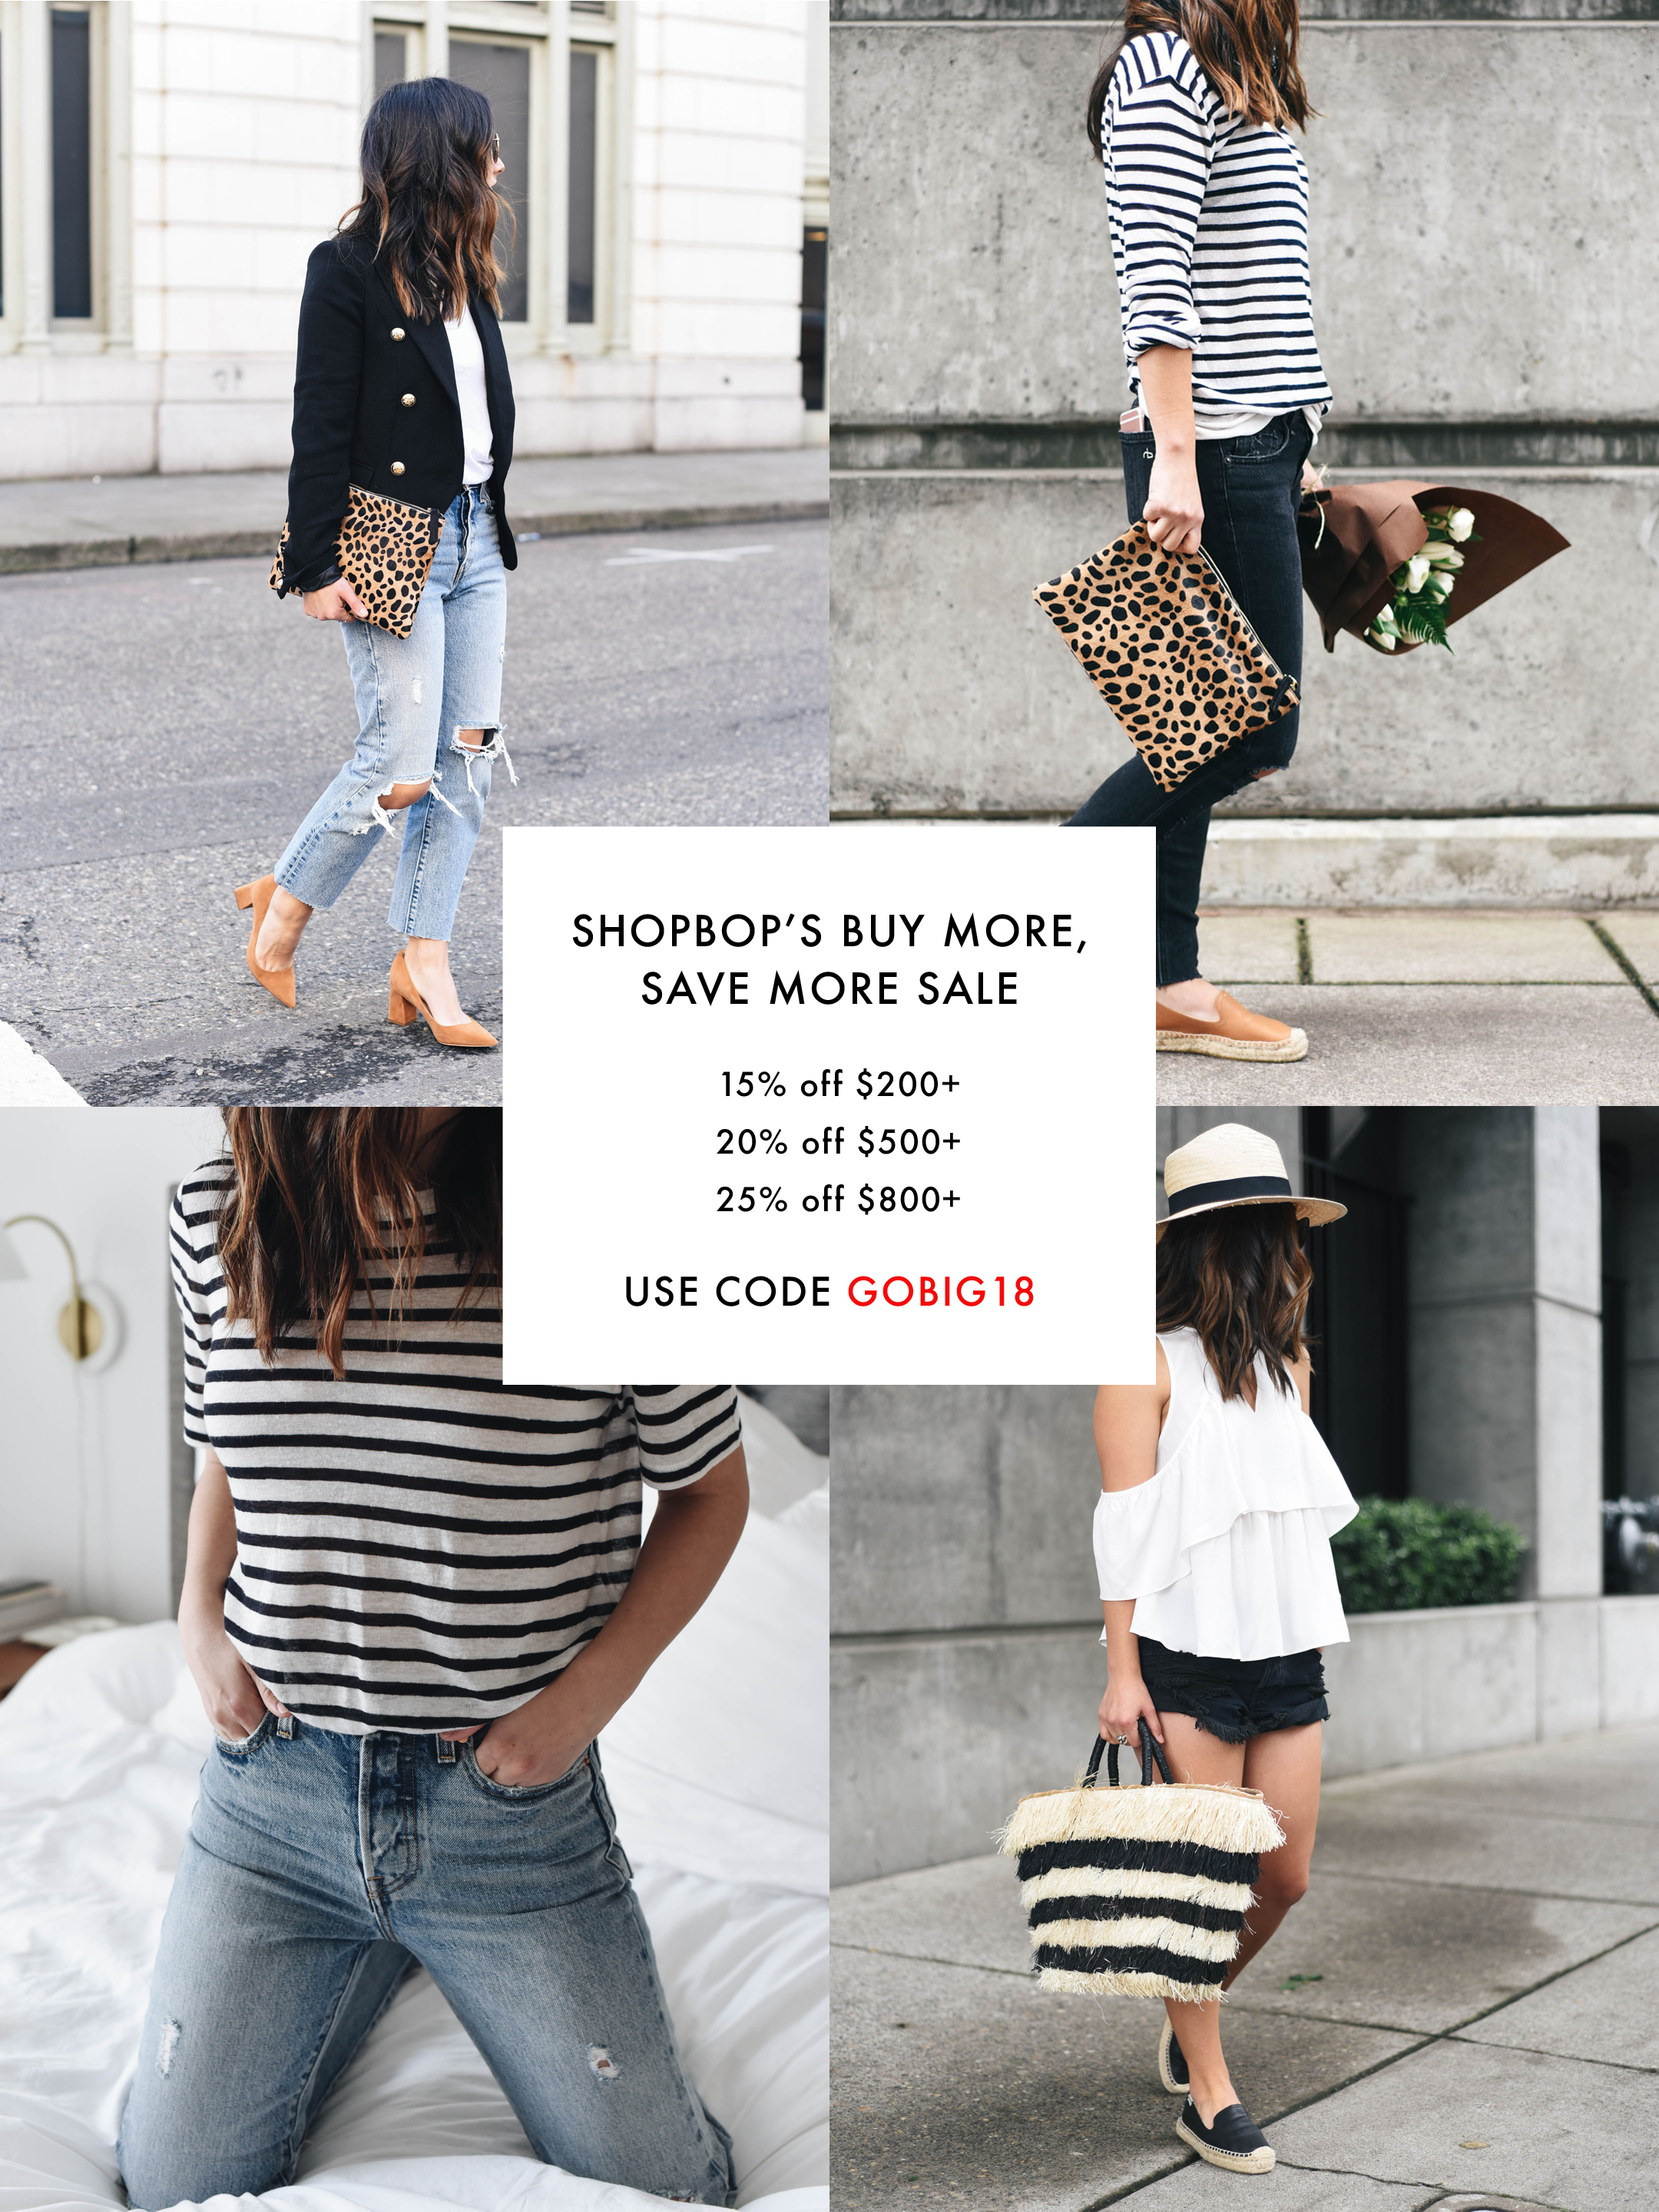 065f31d3b8 It's the first big sale of 2018! Shopbop's Buy More, Save More Sale is here  and I couldn't be more excited. Get 15% off when you spend $200 or more, ...